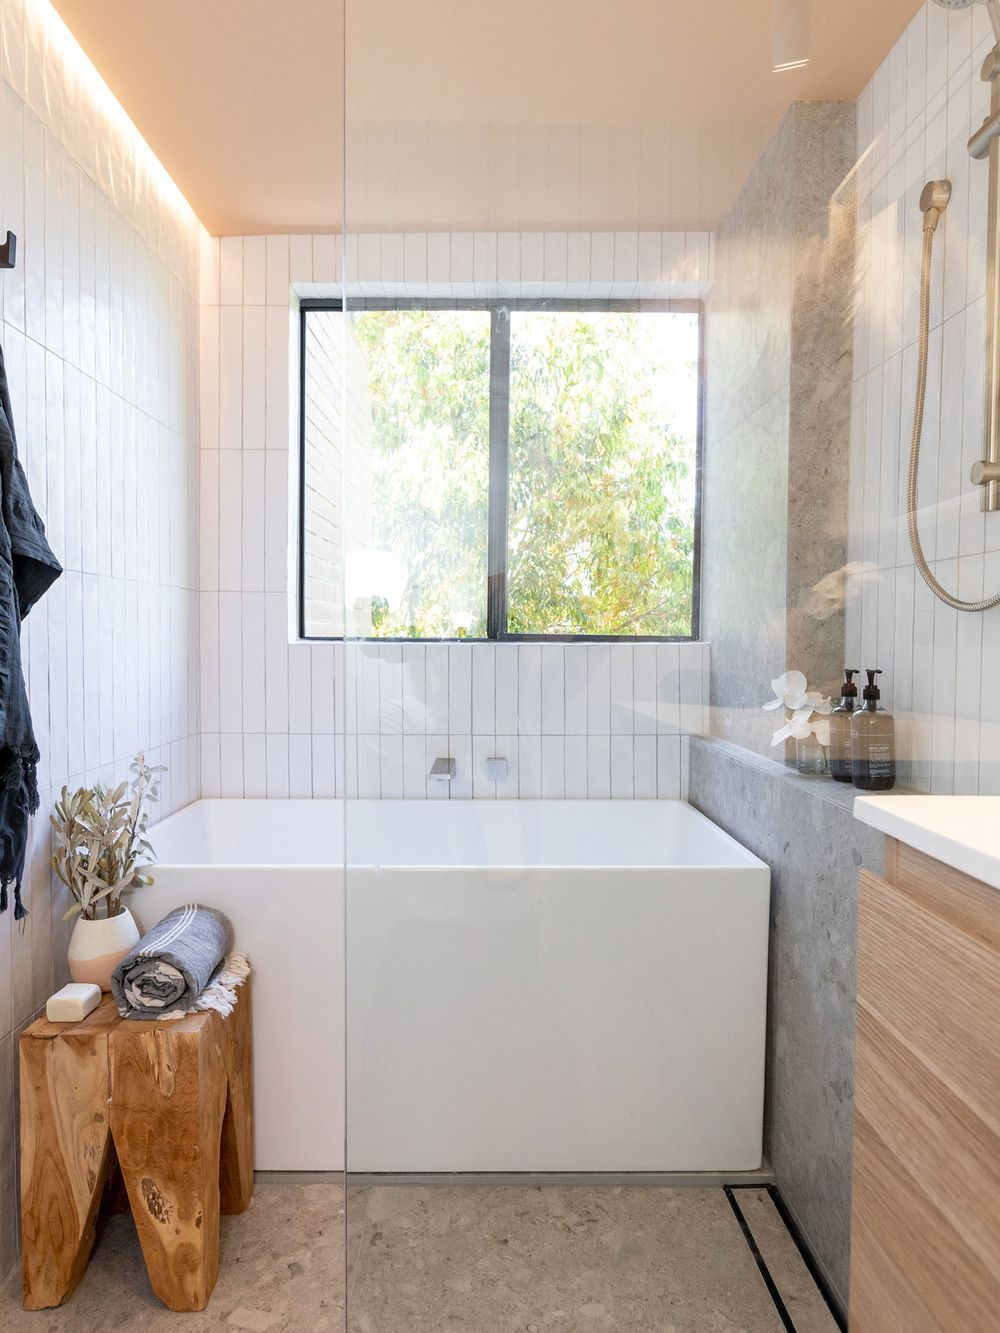 3 things to know before starting a bathroom reno #bathroomrenoideas